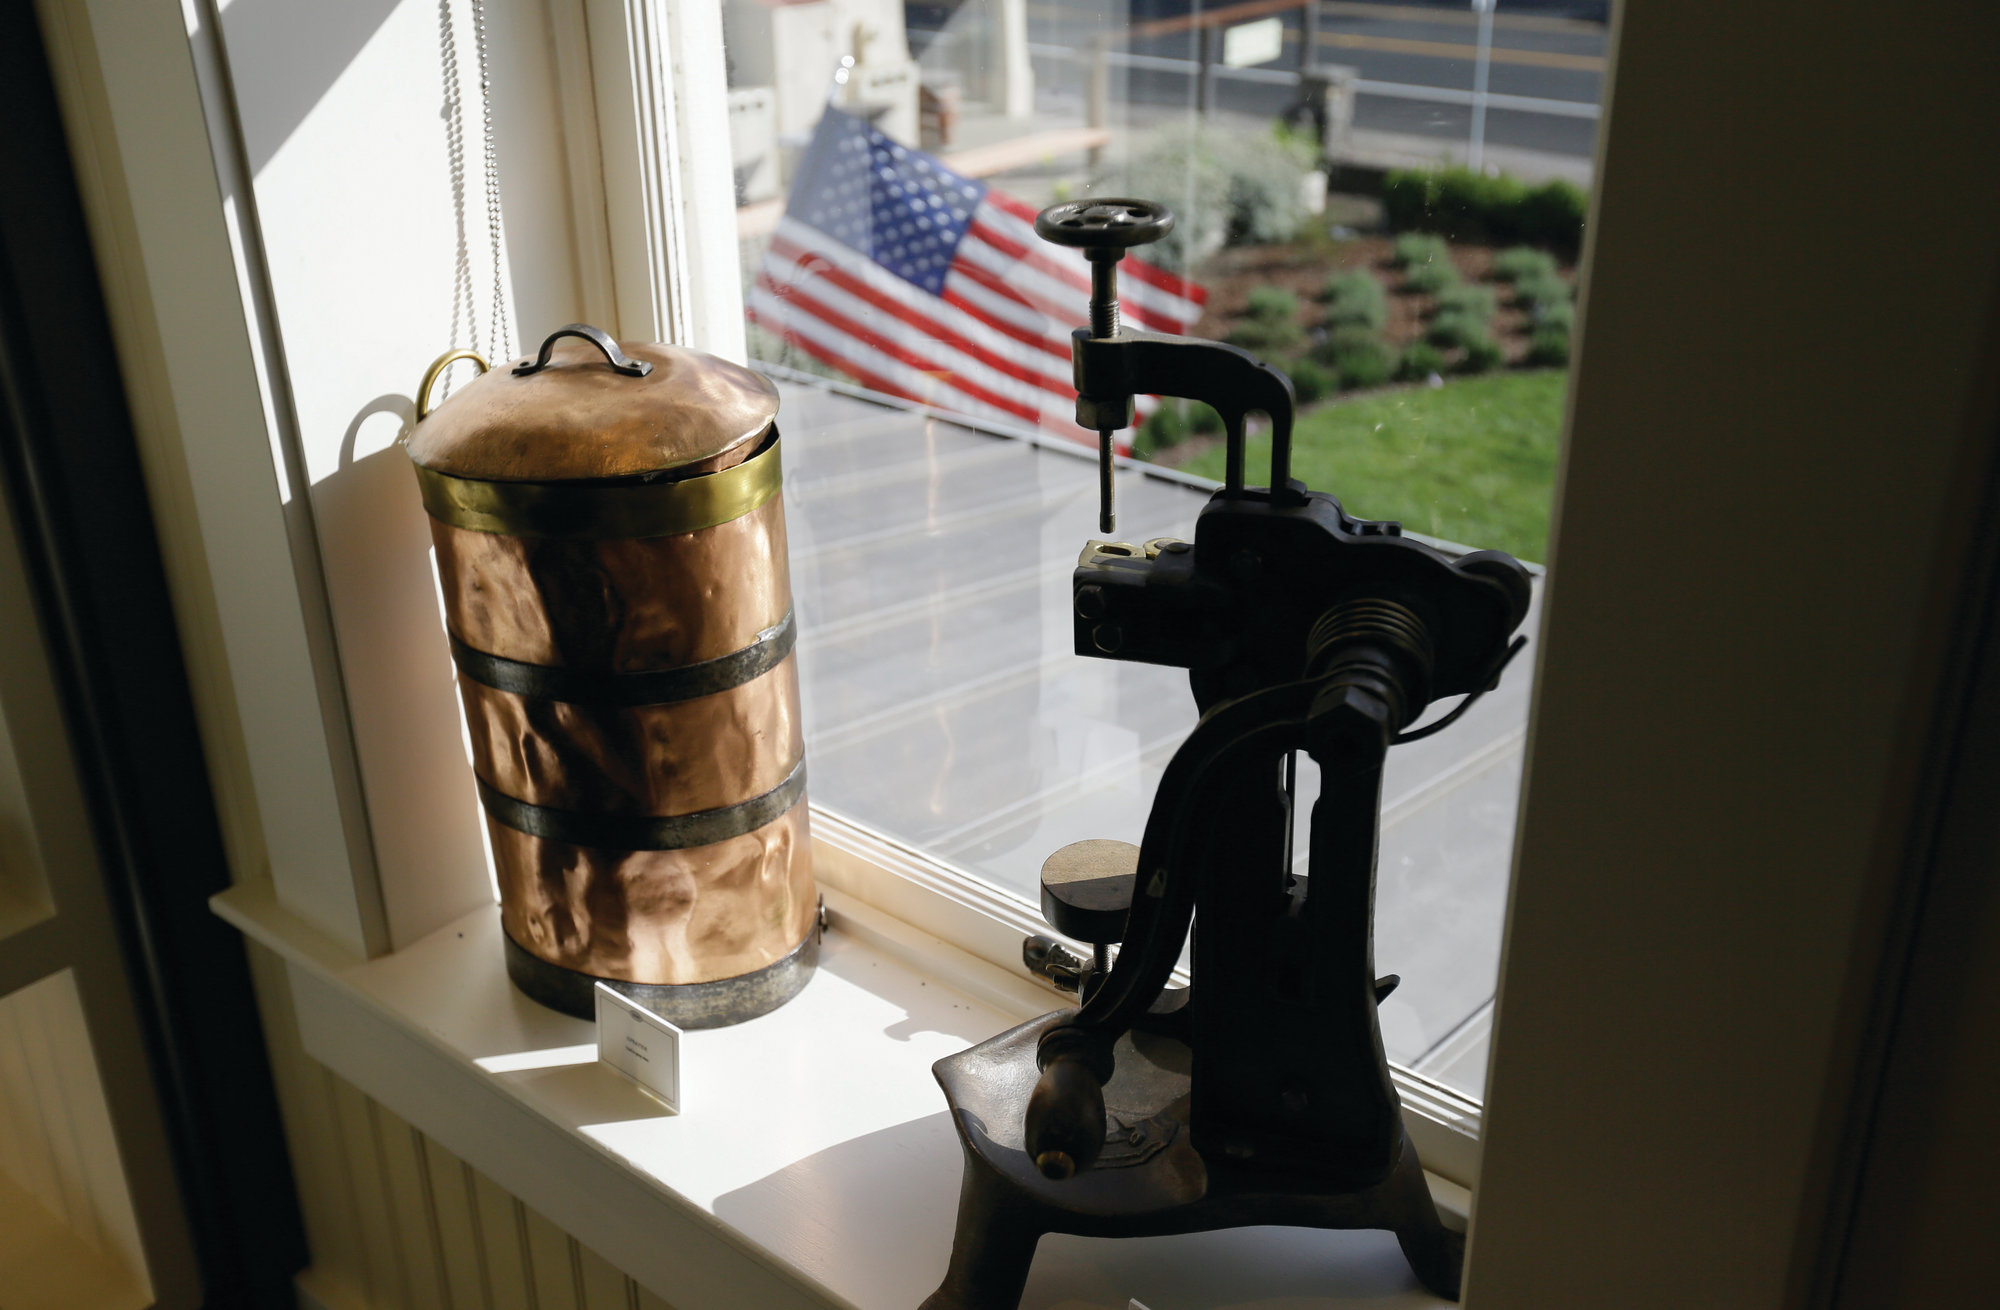 An old bottle corker and sprayer are seen in a window at the museum.